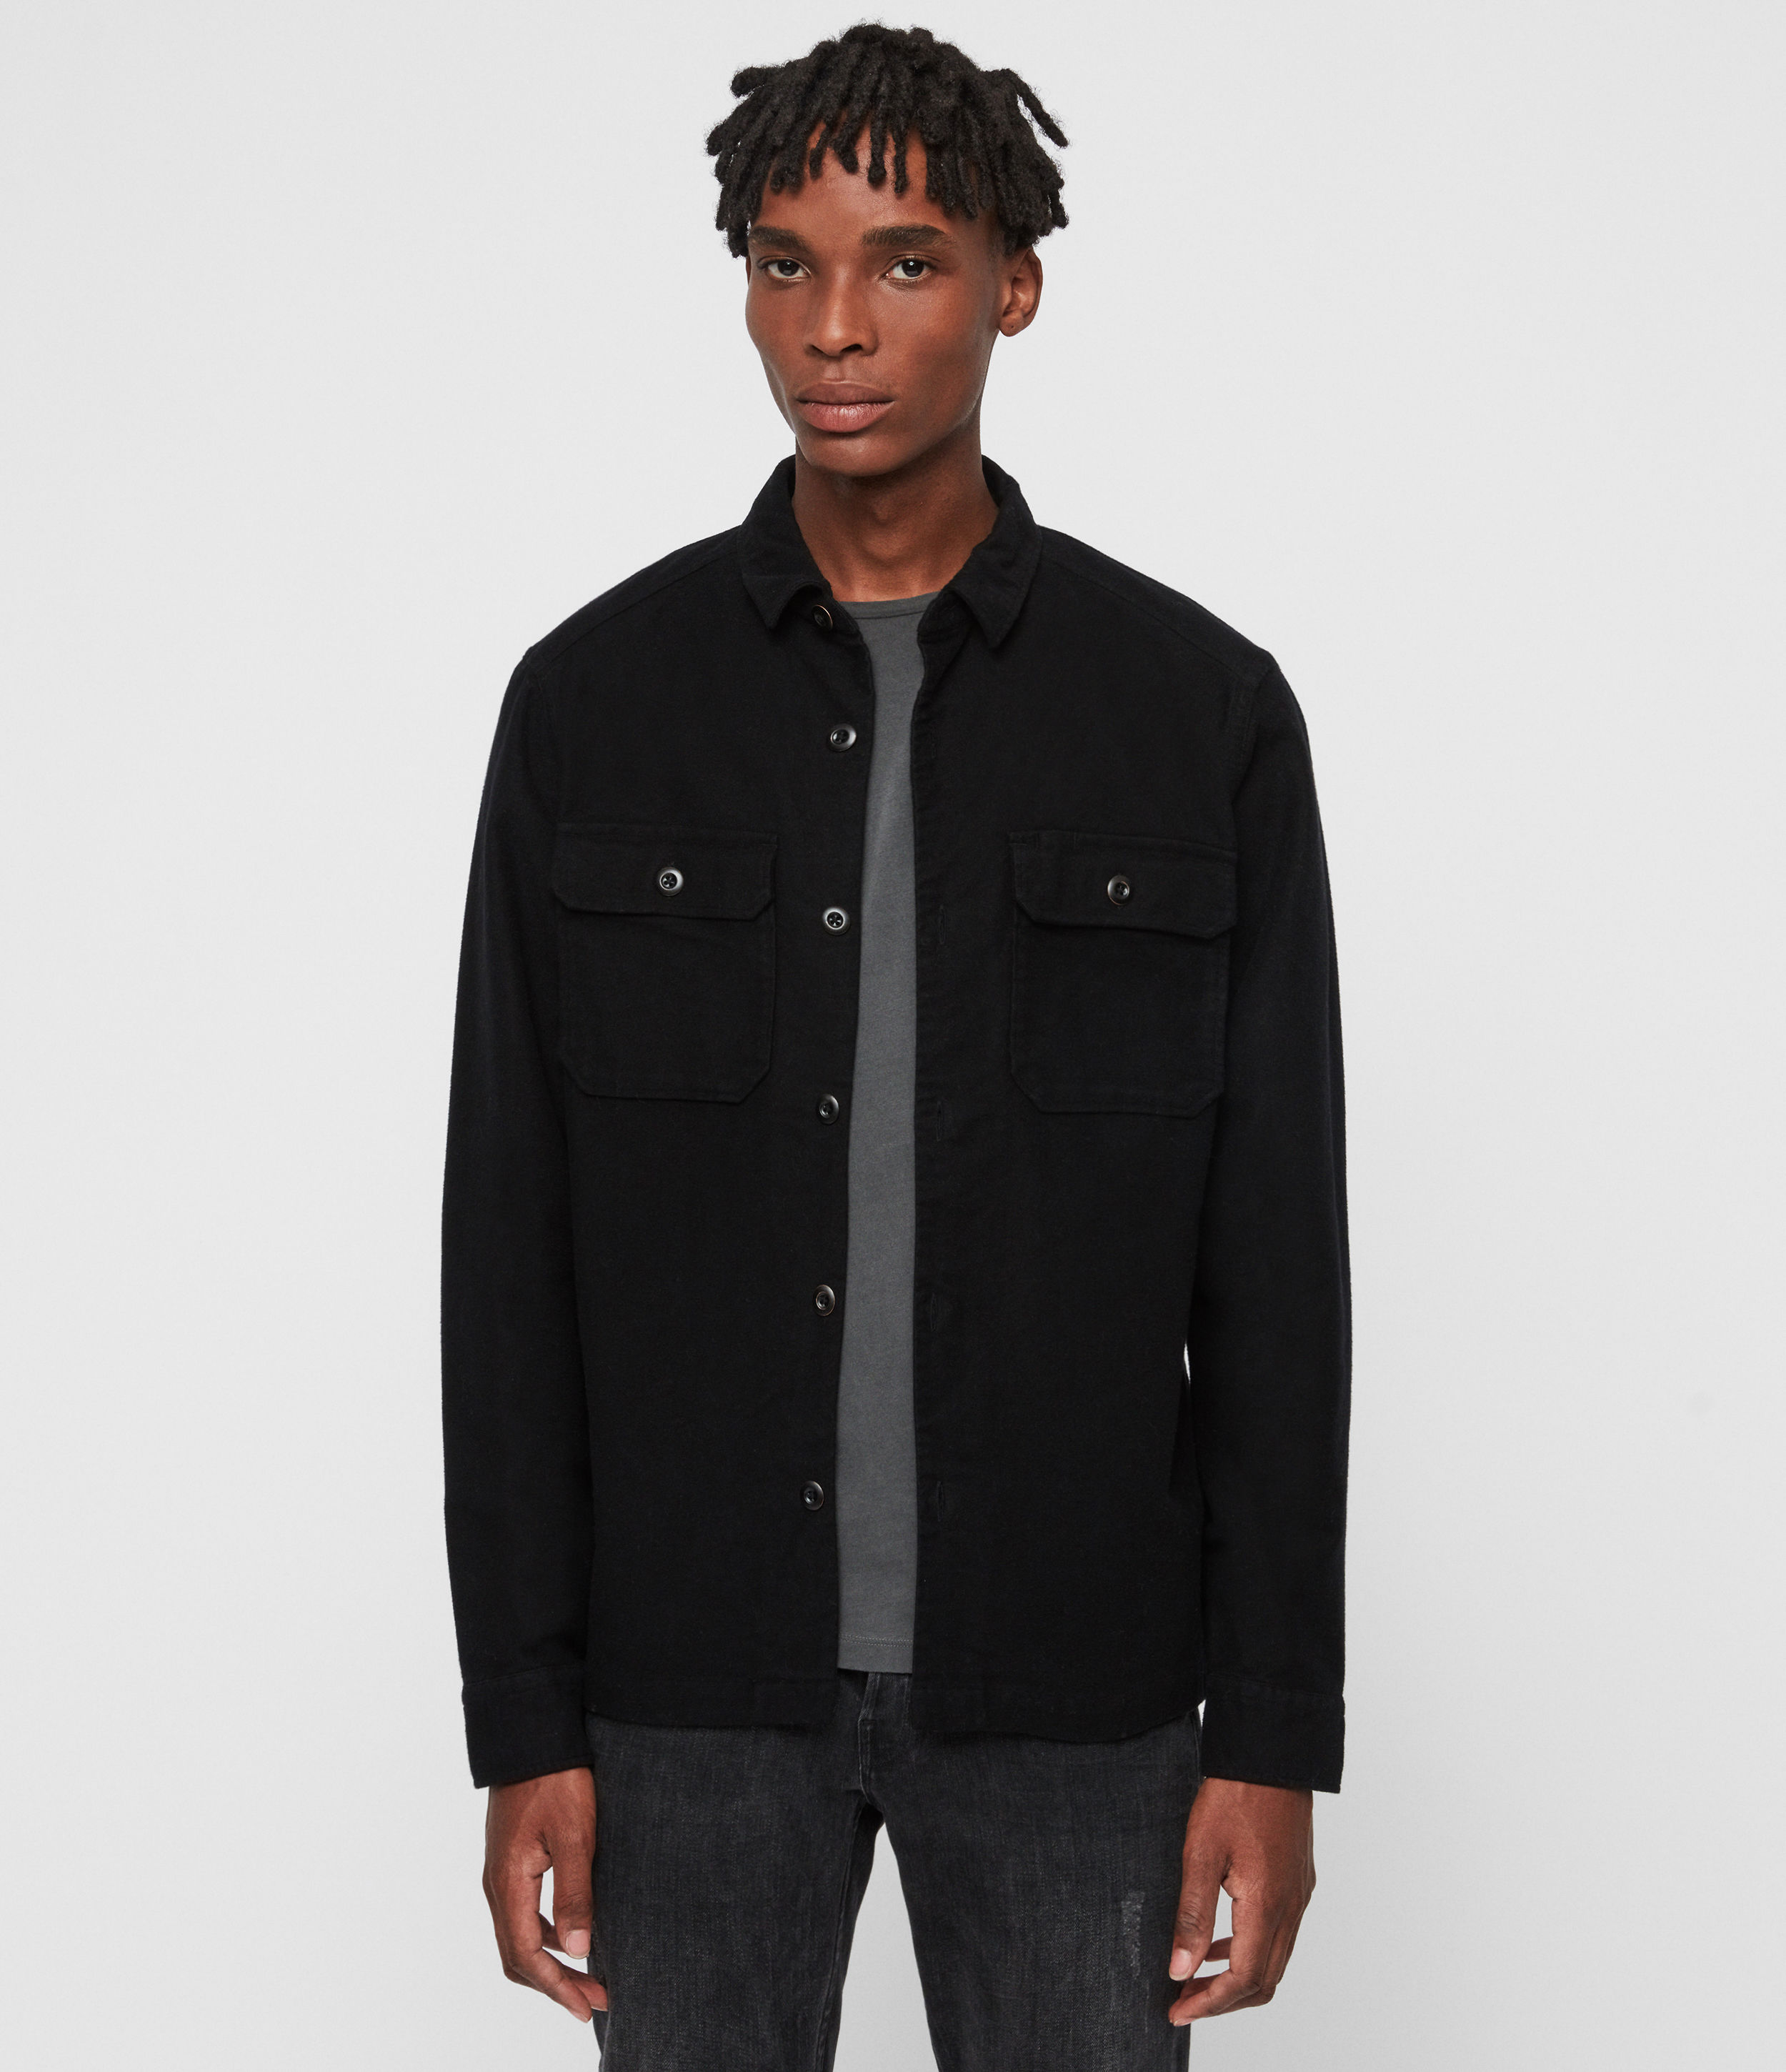 AllSaints Men's Regular Fit Cotton Medium Humboldt Long Sleeve Shirt, Black, Size: XS